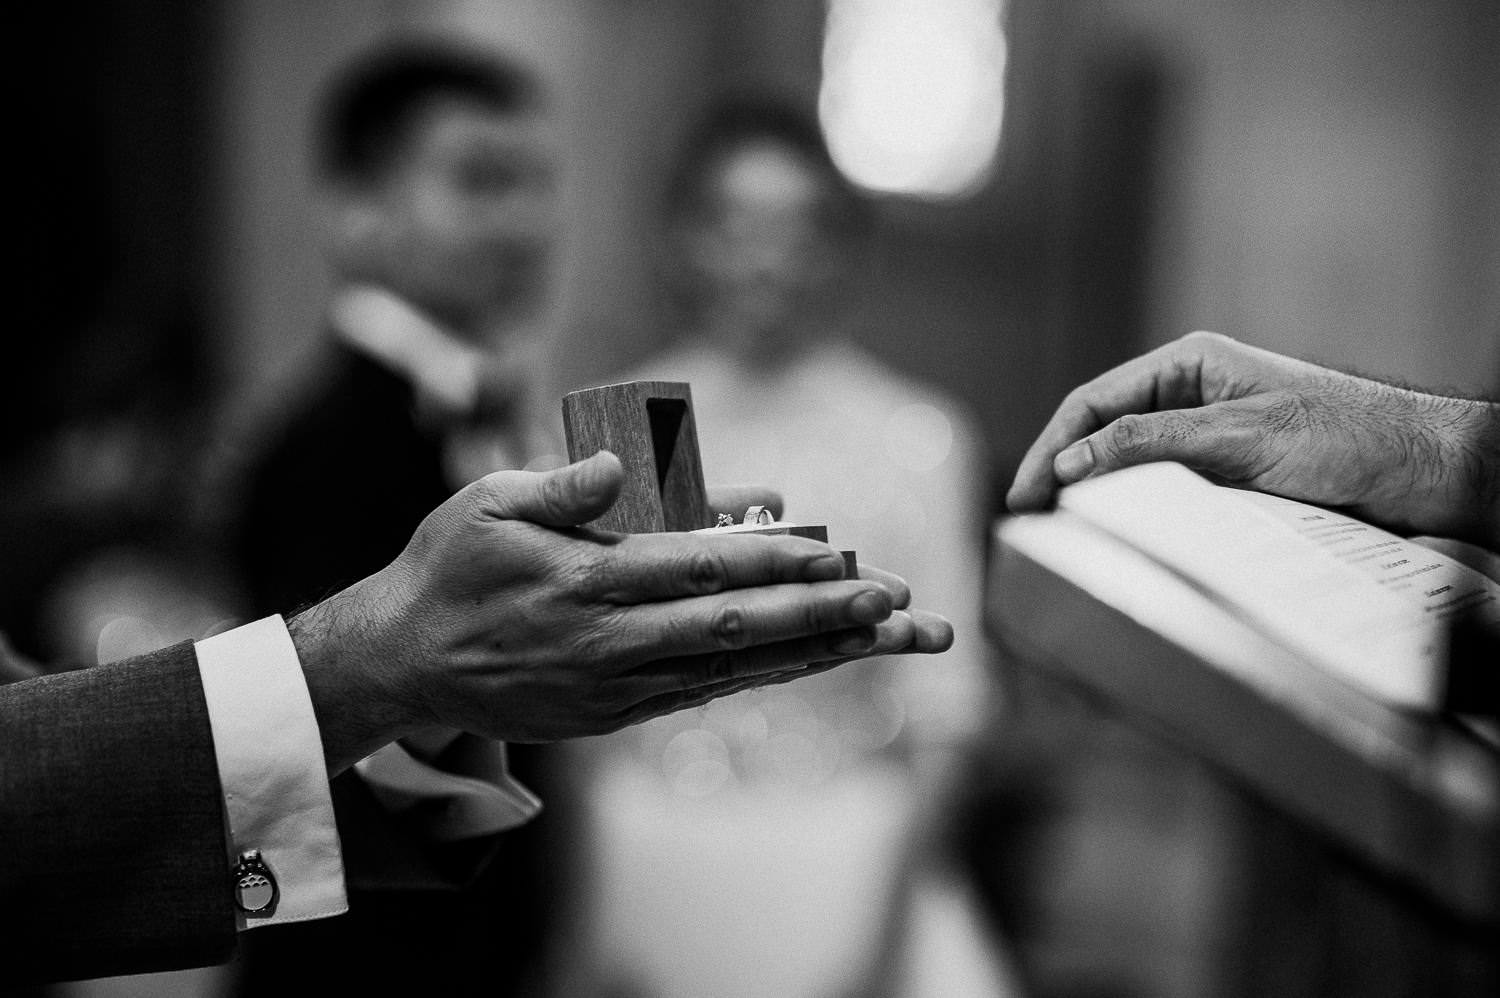 beautiful documentary photo of the wedding rings tibidabo church